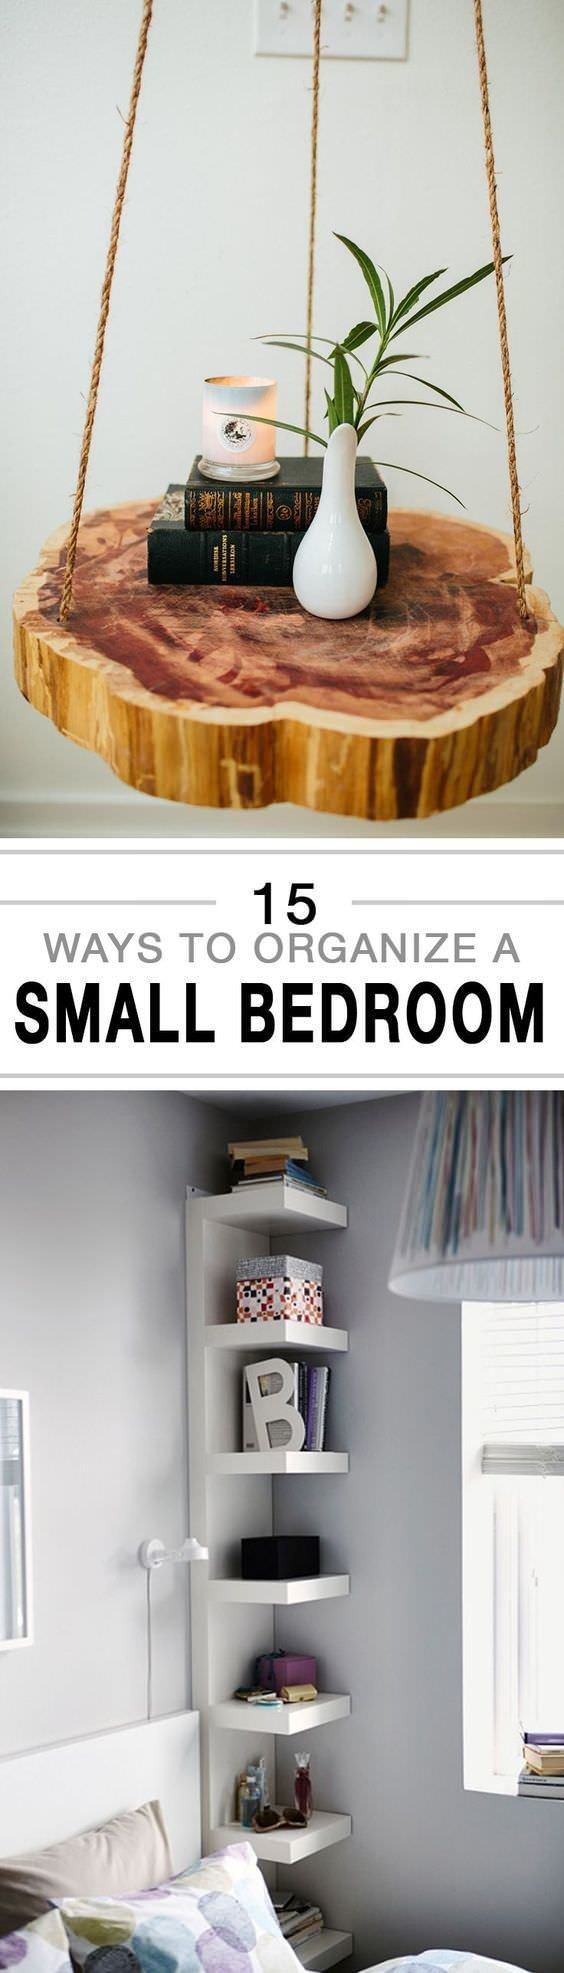 Best 15 Ways To Organize A Small Bedroom House Good With Pictures